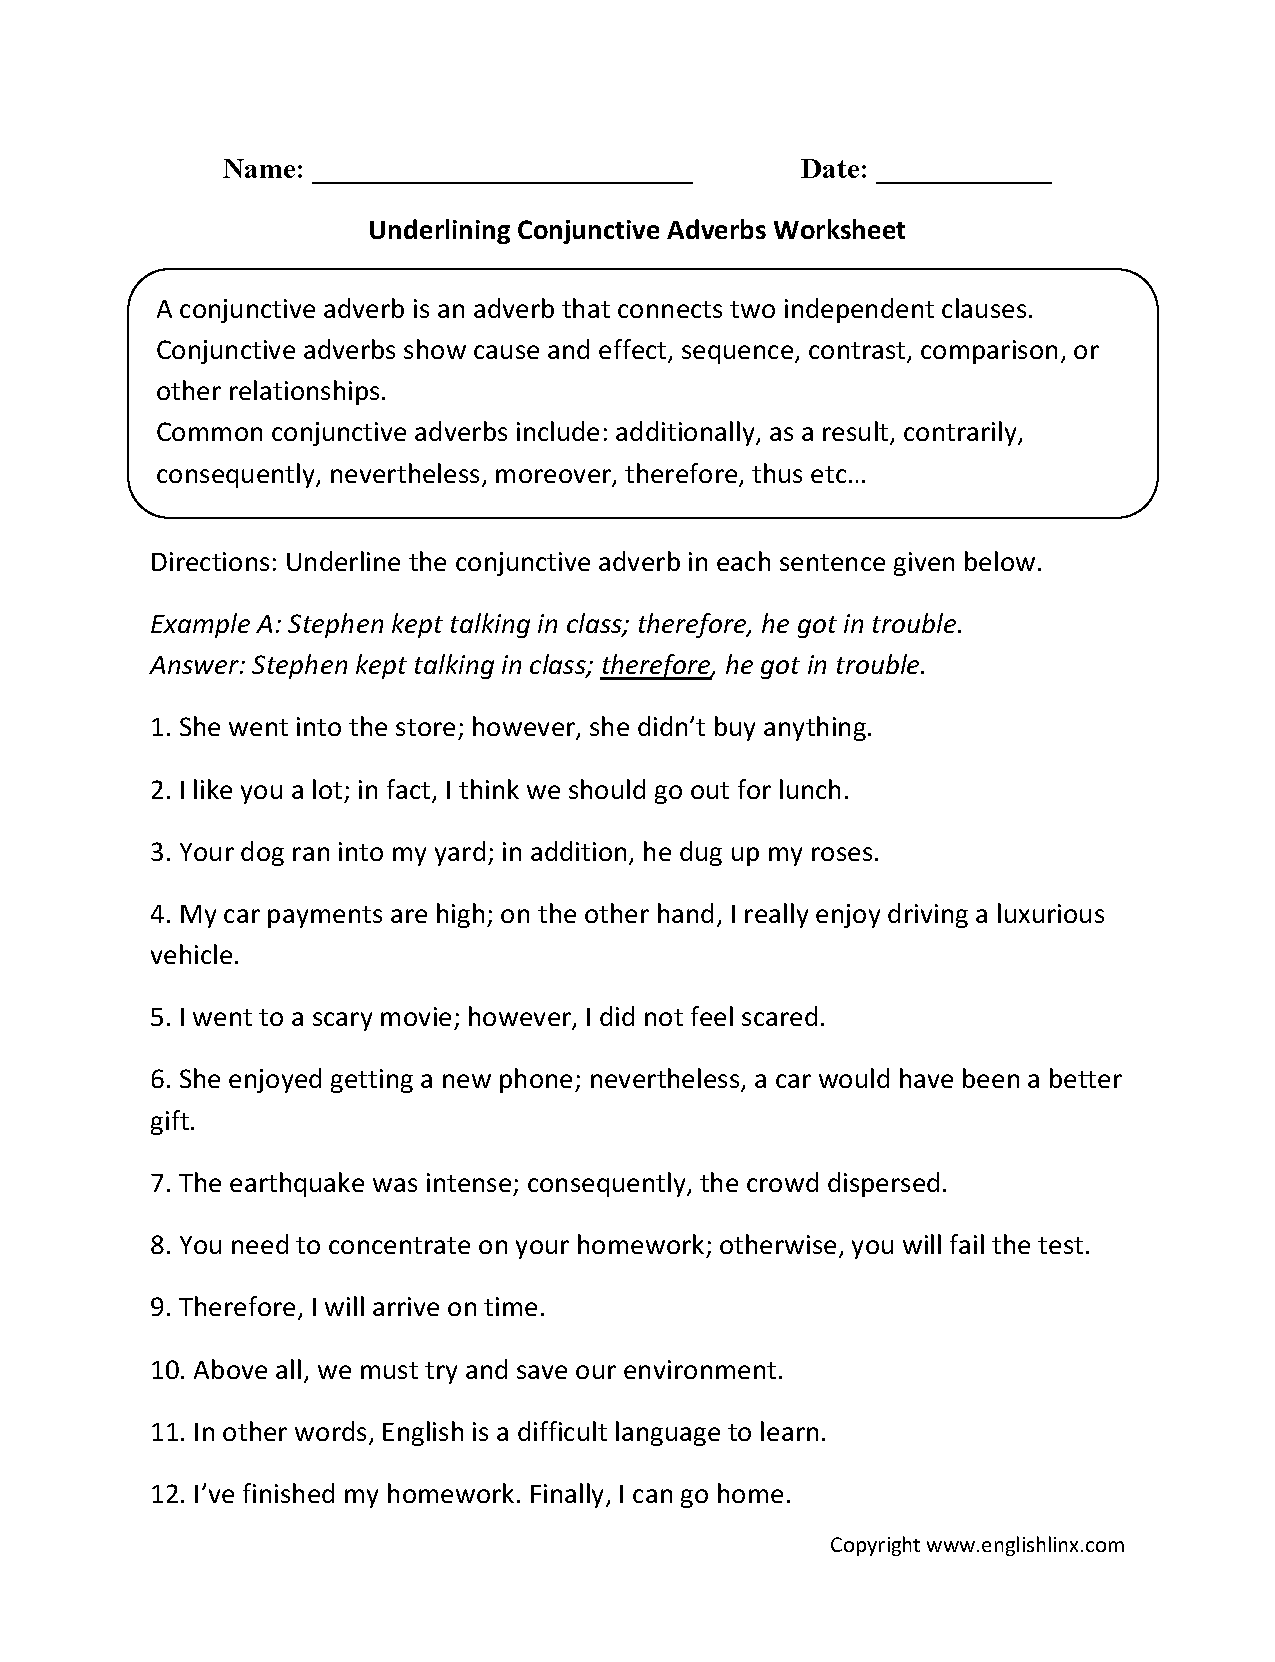 Weirdmailus  Outstanding Englishlinxcom  Conjunctions Worksheets With Gorgeous Worksheet With Extraordinary Addition With Base Ten Blocks Worksheets Also Holt Science And Technology Directed Reading Worksheets In Addition Writing Practice Worksheet And Compare And Contrast Worksheet Nd Grade As Well As Printable Cutting Worksheets Additionally Science Homework Worksheets From Englishlinxcom With Weirdmailus  Gorgeous Englishlinxcom  Conjunctions Worksheets With Extraordinary Worksheet And Outstanding Addition With Base Ten Blocks Worksheets Also Holt Science And Technology Directed Reading Worksheets In Addition Writing Practice Worksheet From Englishlinxcom